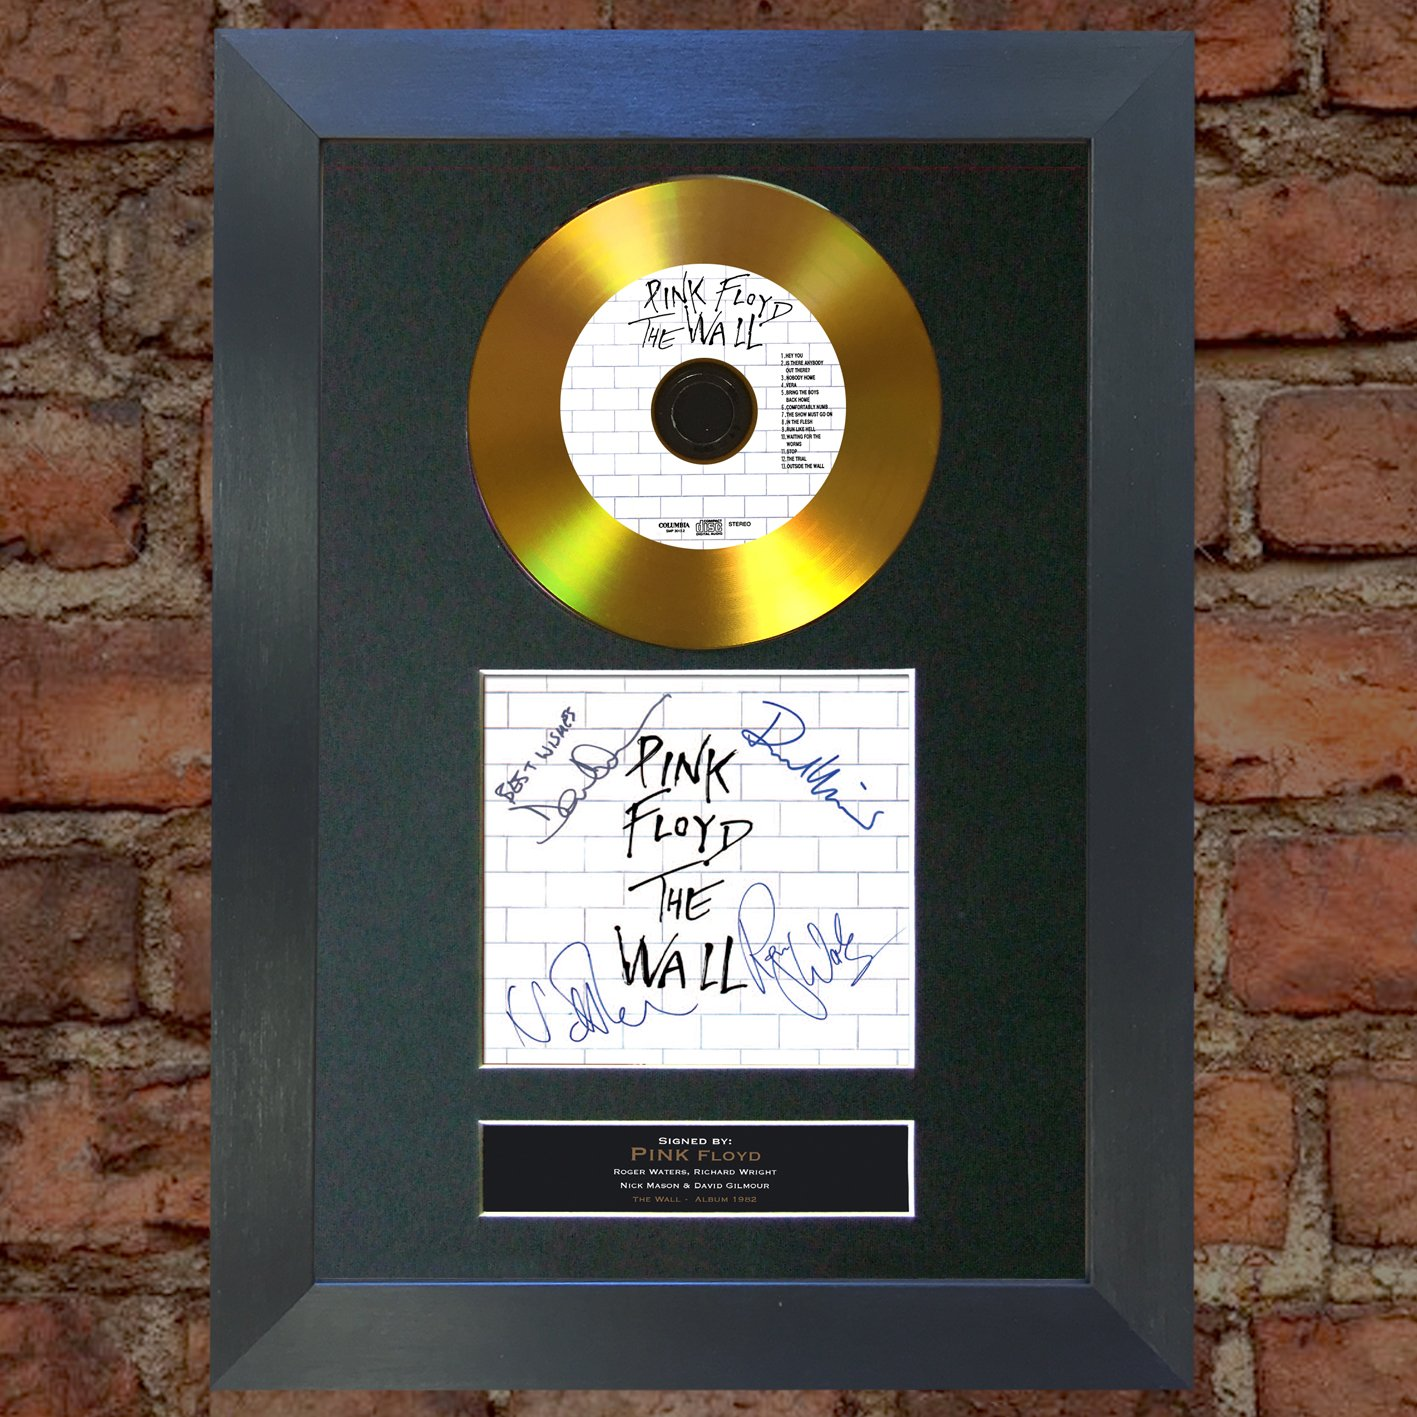 #115 GOLD DISC PINK FLOYD The Wall Album Signed Autograph Mounted Reproduction A4 Print (Black Frame) The Autograph Collector